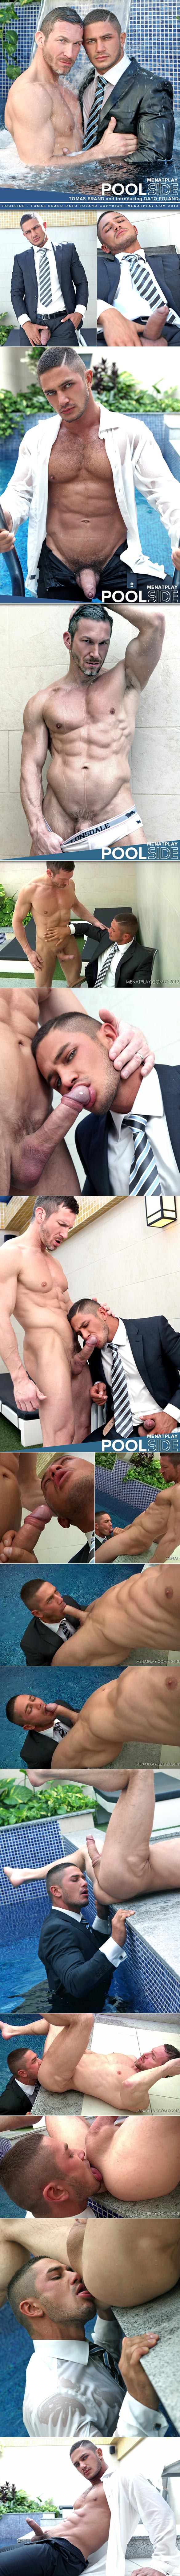 "MenAtPlay: Newcomer Dato Foland tops Tomas Brand in ""Poolside"""